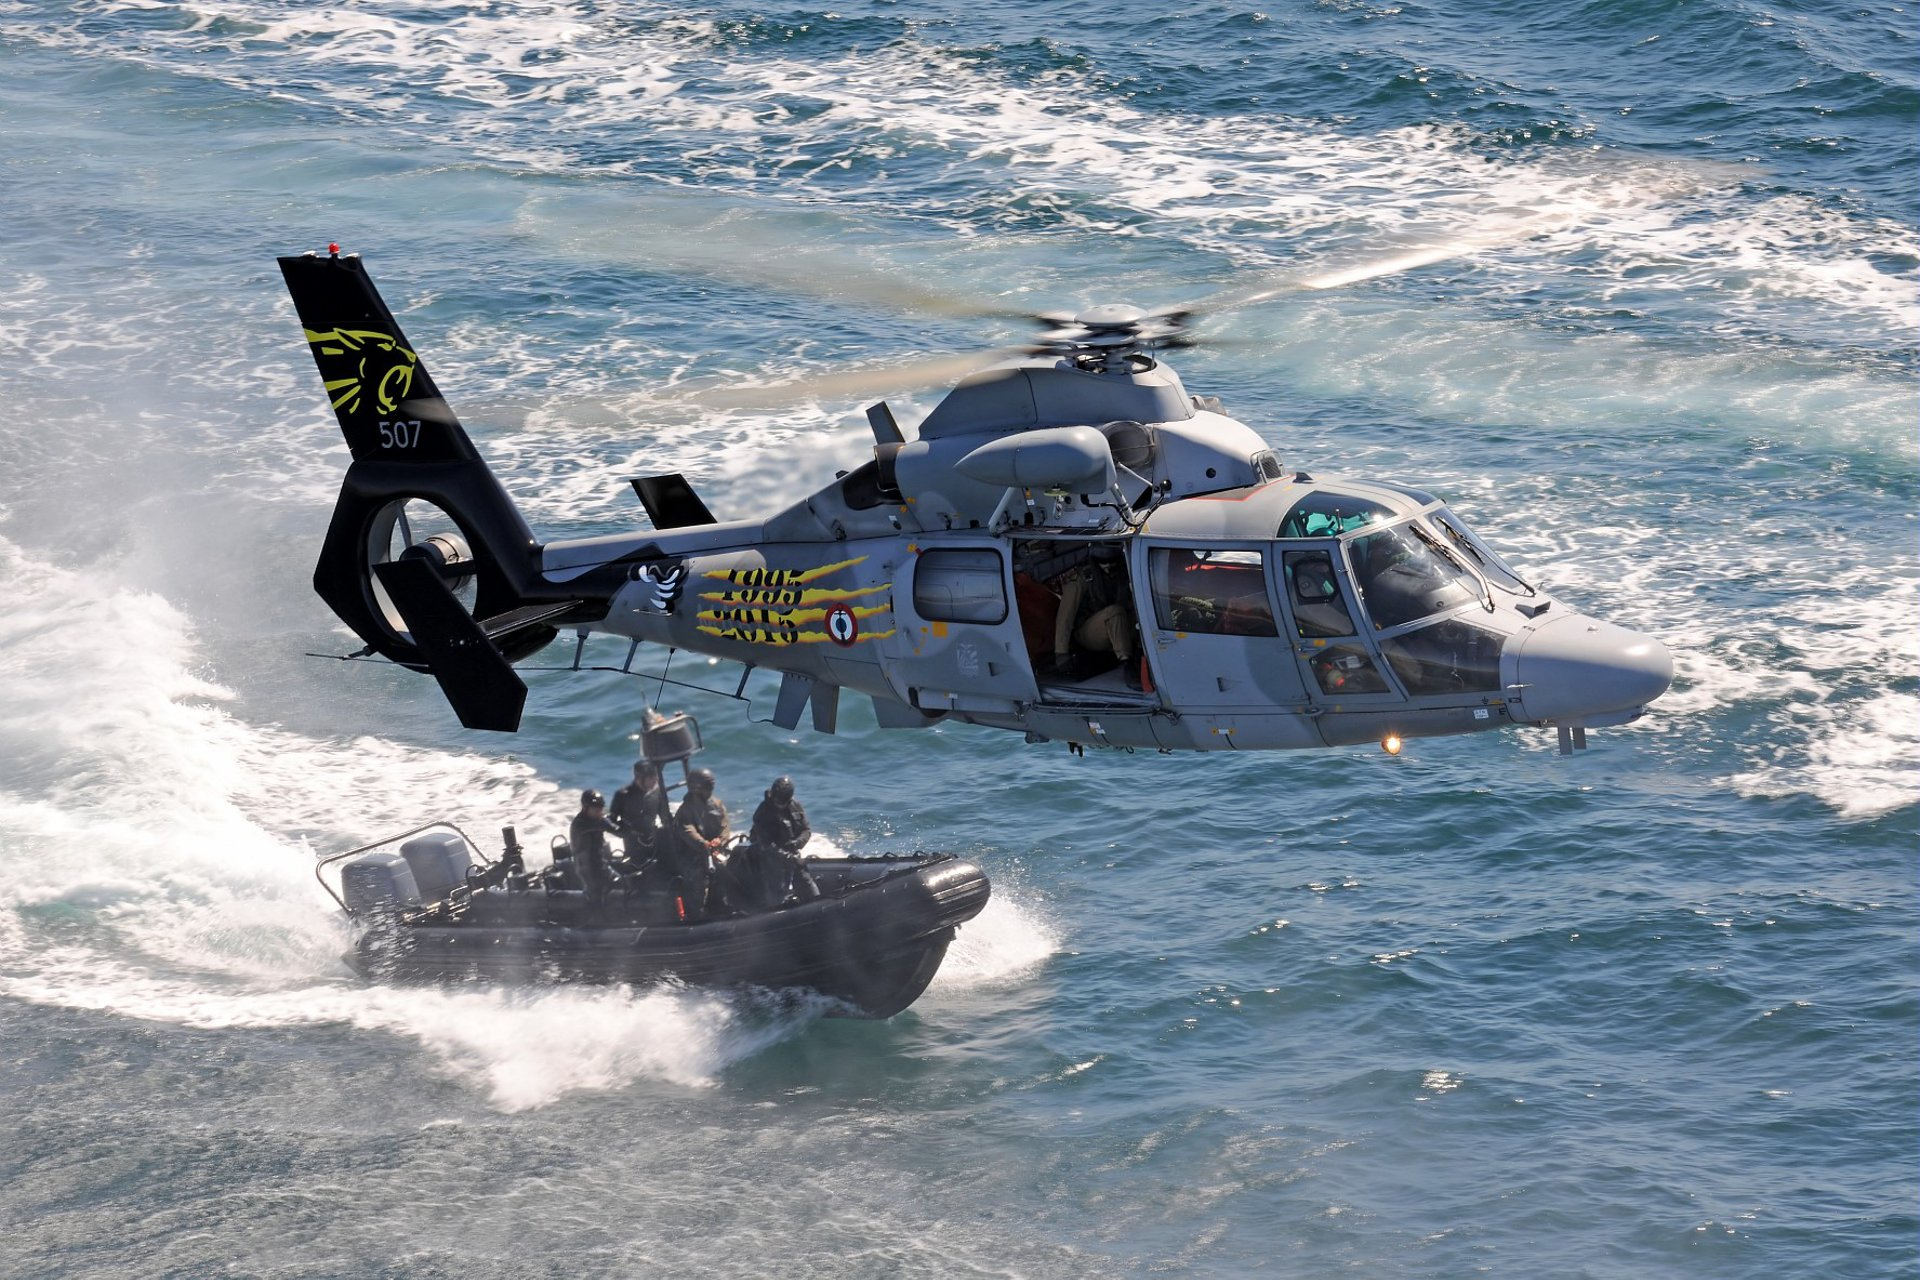 An Airbus AS565 MBe military helicopter of the French Navy flies over a vessel with commandos.